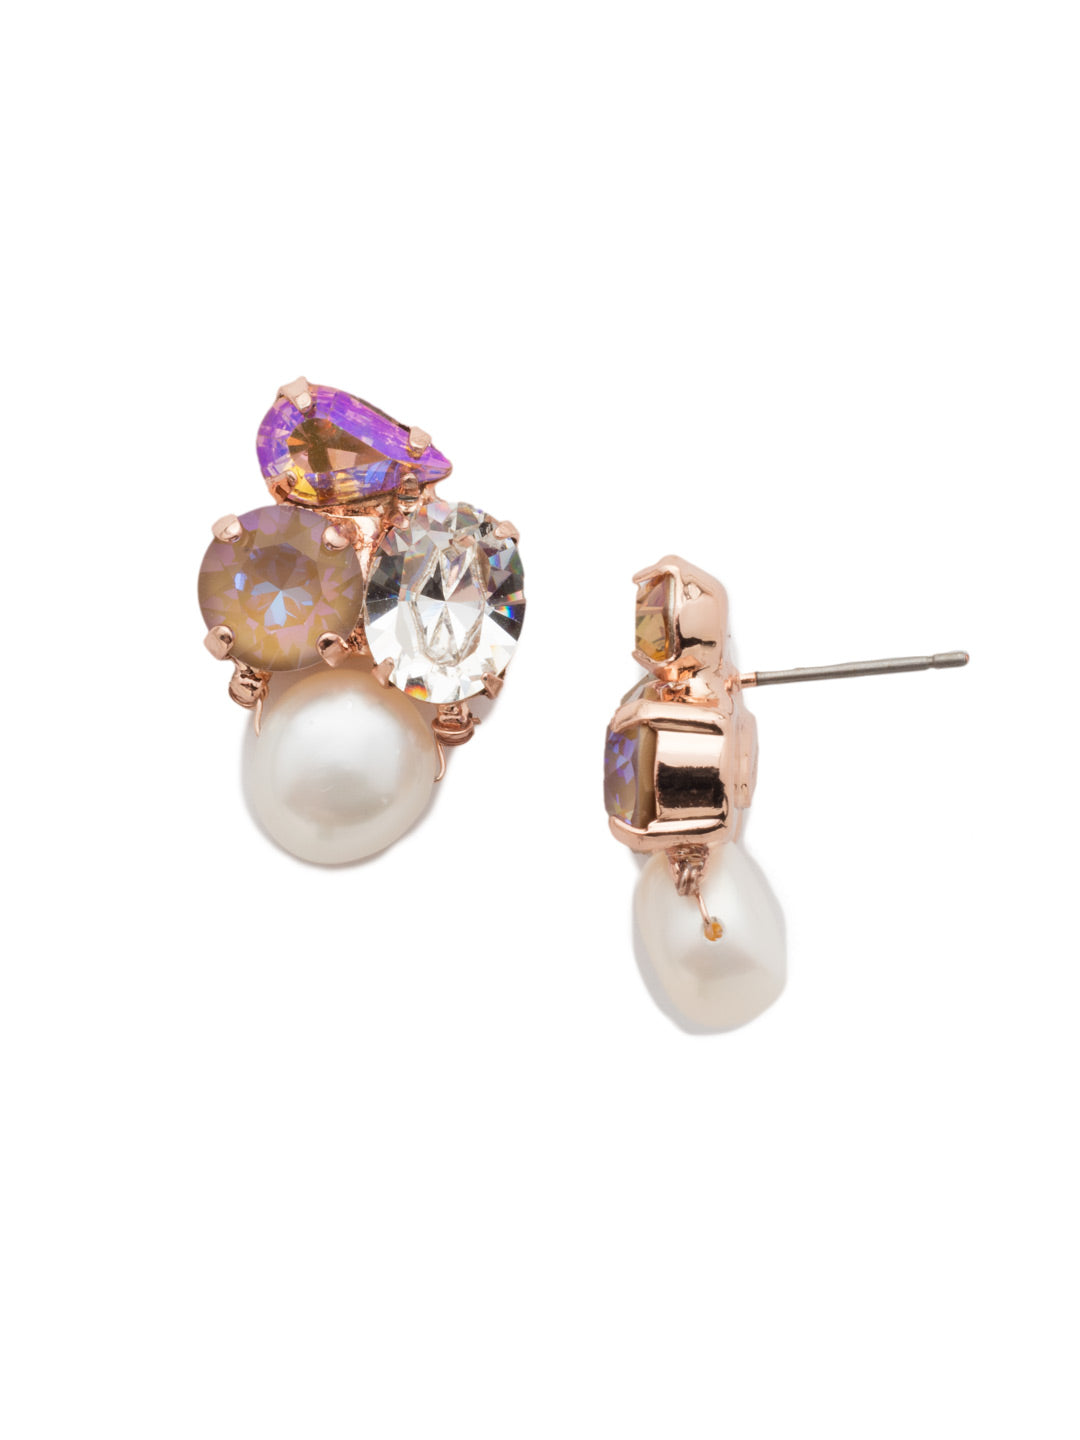 Aziza Stud Earrings - EEK18RGROG